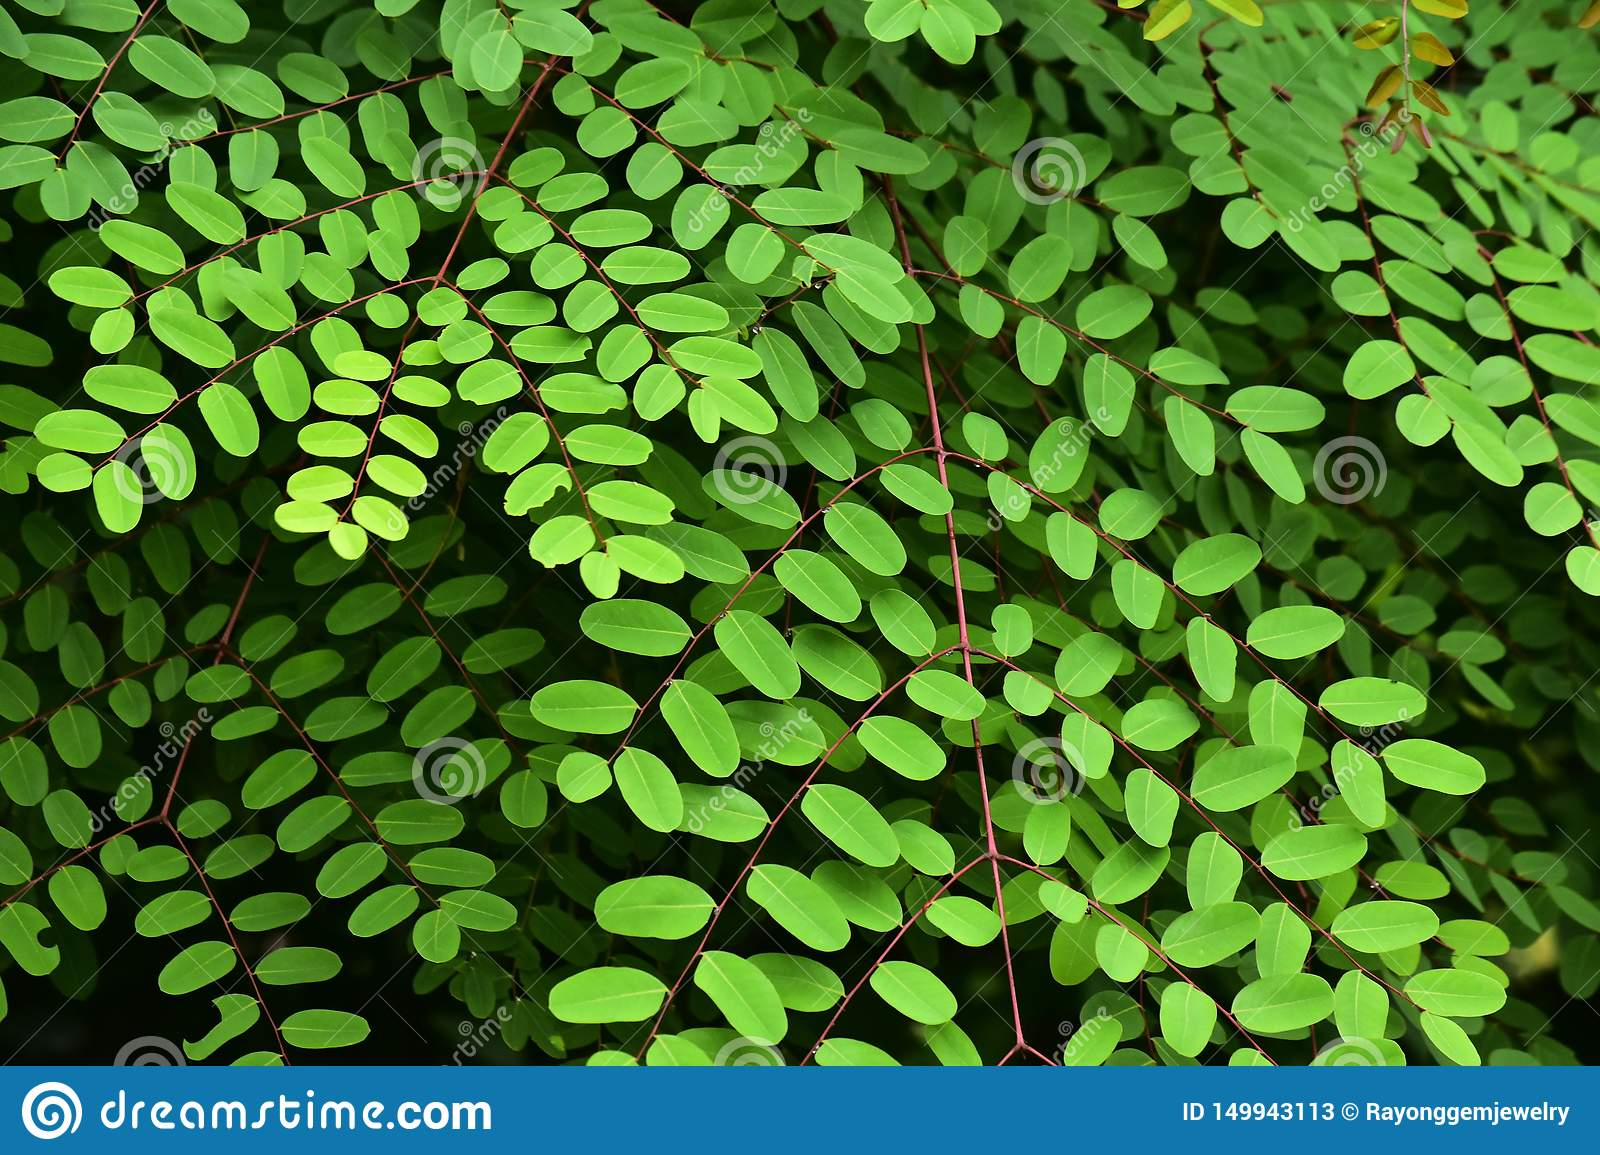 Natural green leaves in the flower garden Beautiful and refreshing on a relaxing day